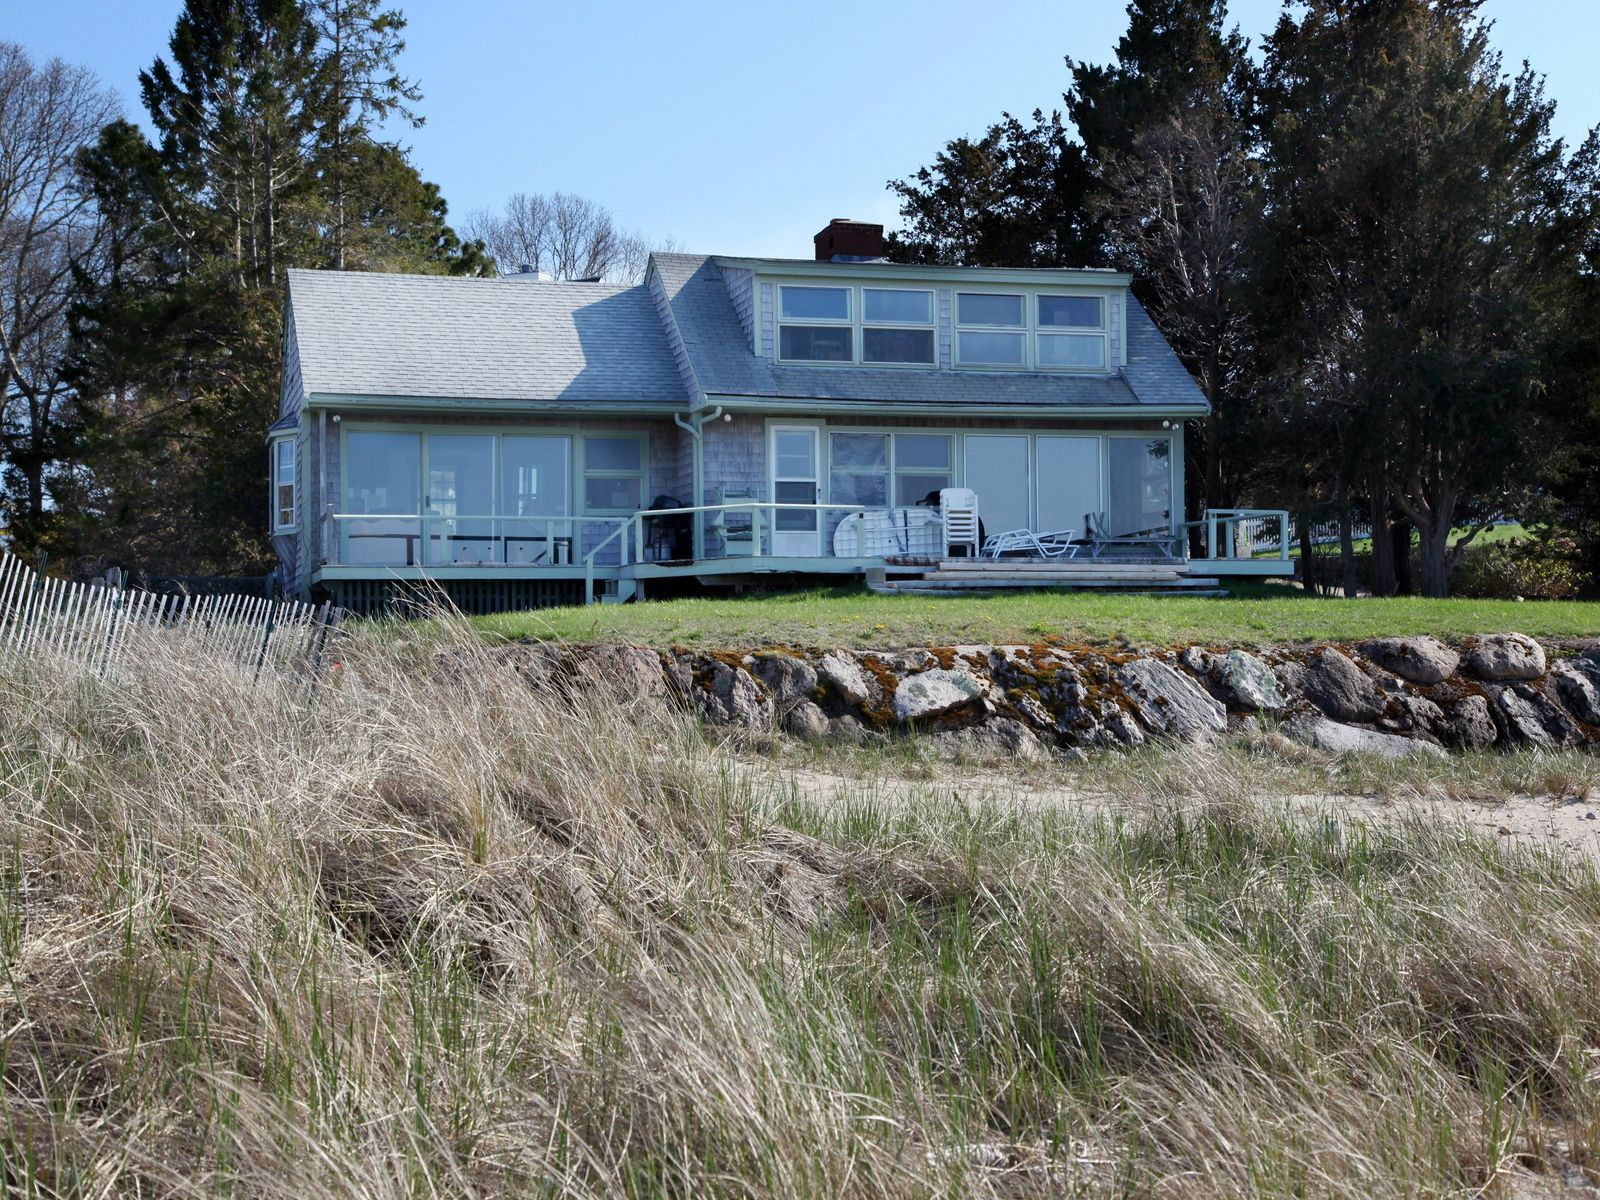 Classic Oceanfront Cottage with Beach, North Falmouth MA Single Family Home - Cape Cod Real Estate